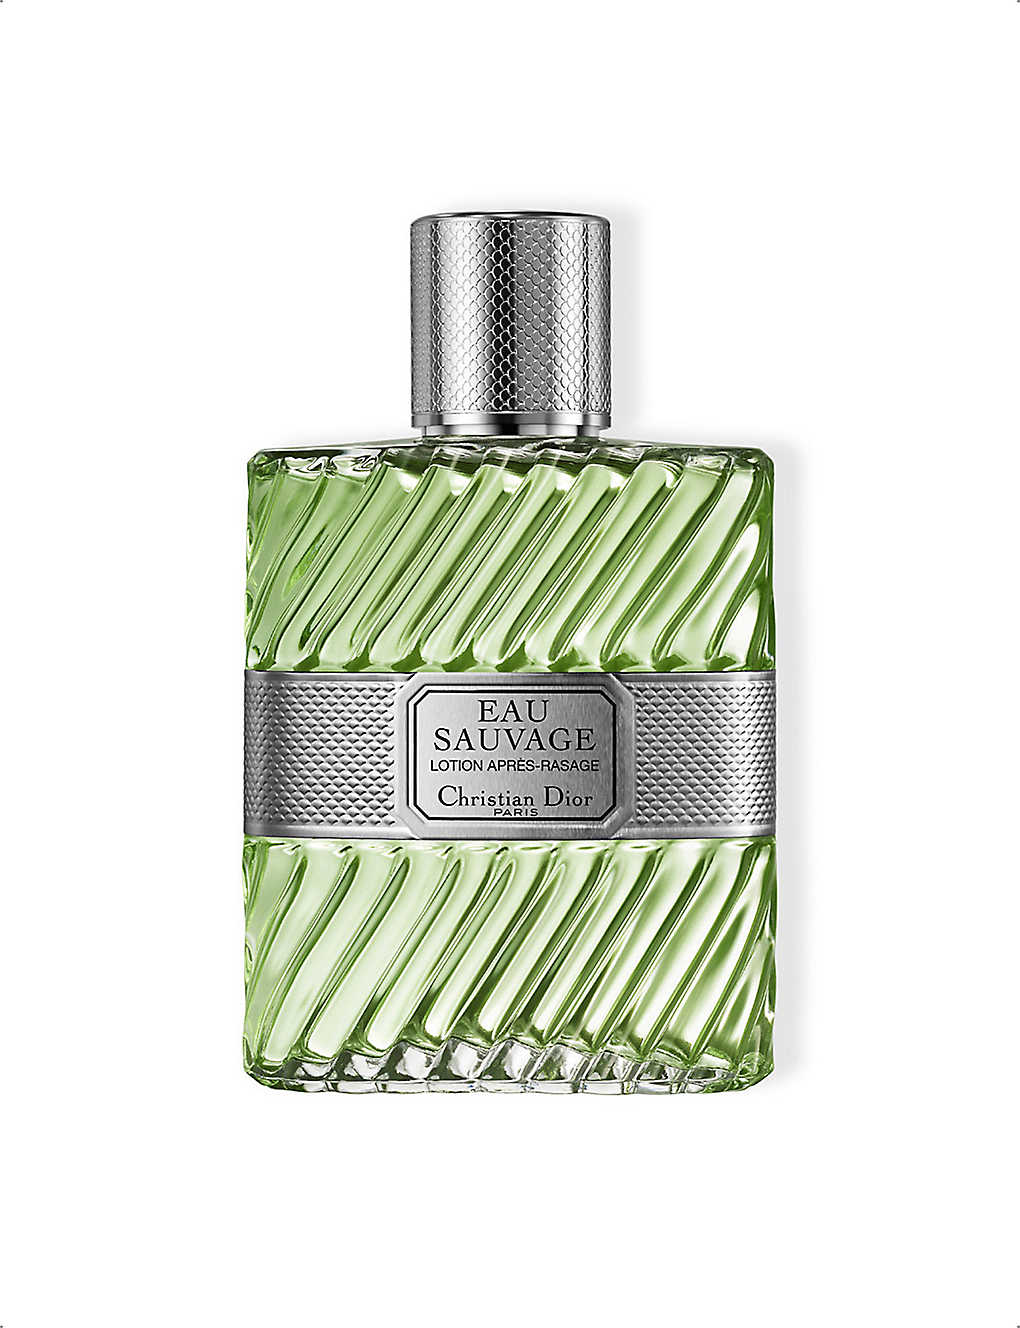 dd4a1154 Eau Sauvage aftershave lotion spray